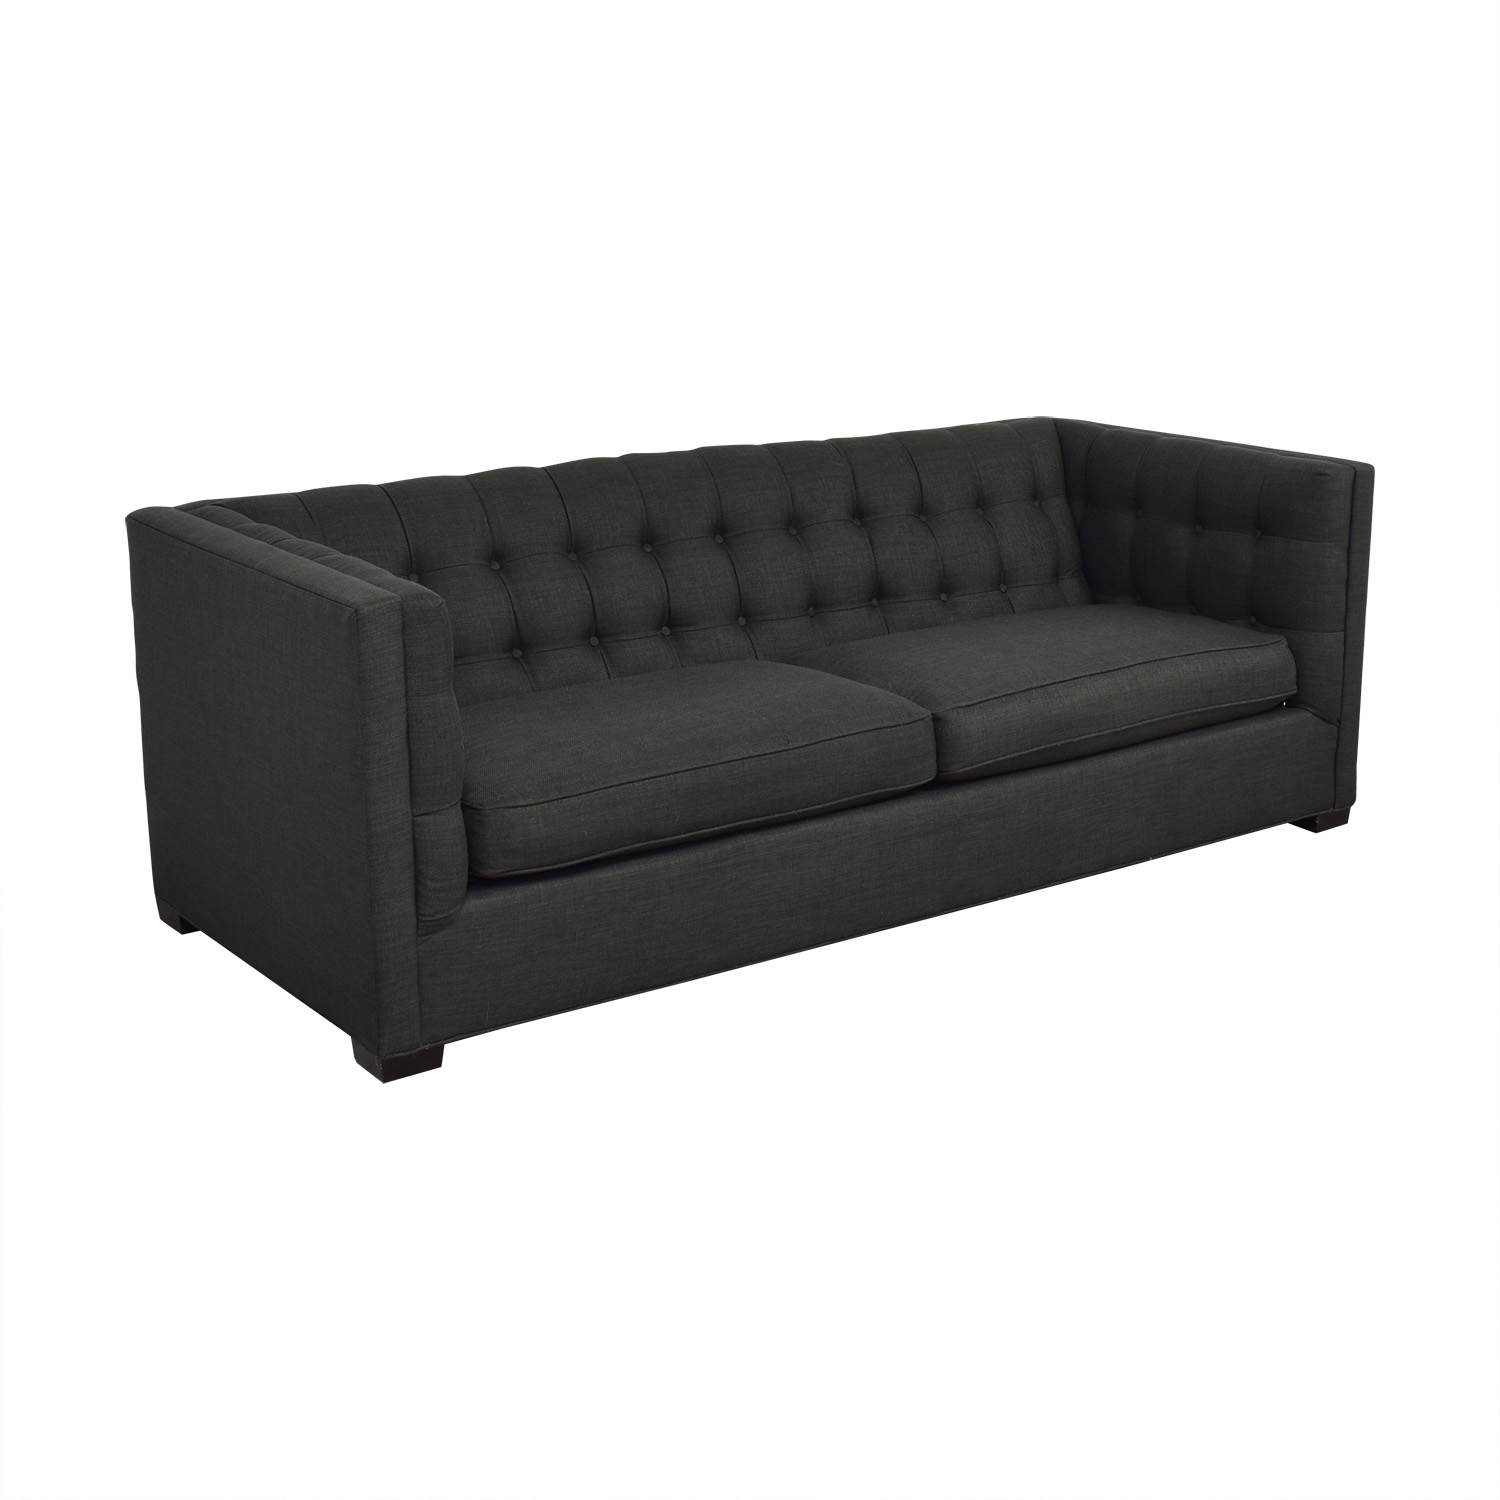 Raymour & Flanigan Raymour & Flanigan Tufted Tuxedo Sofa on sale